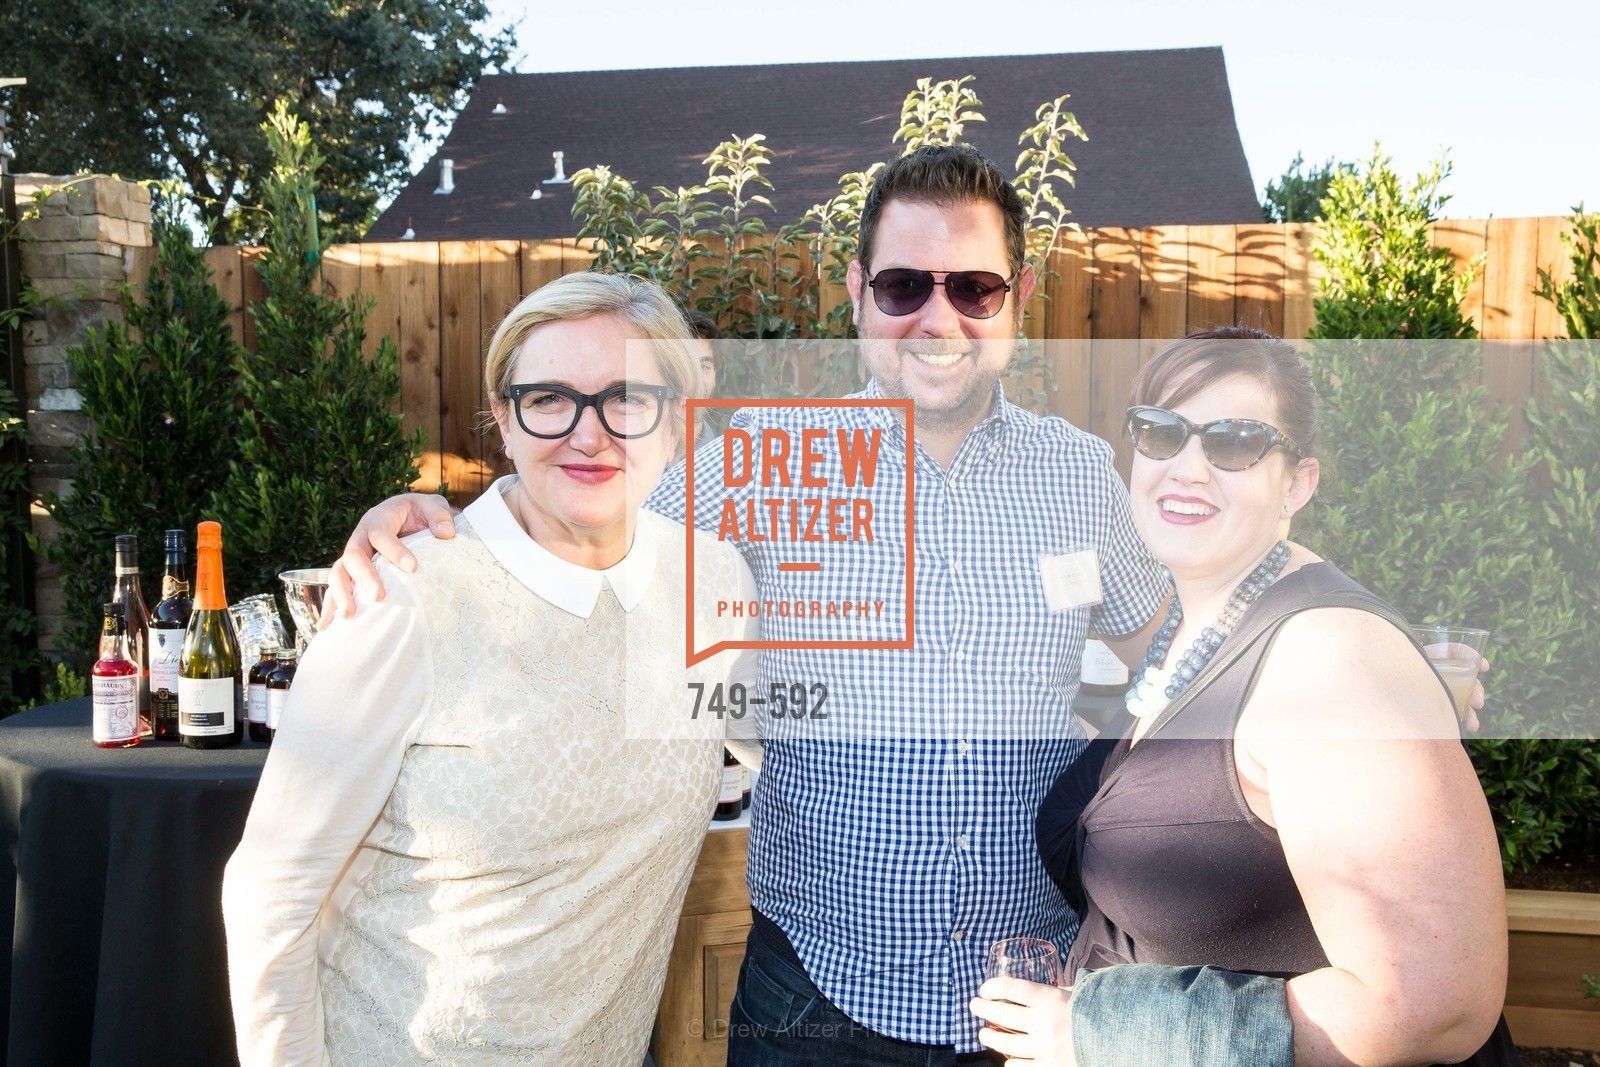 Jean Anderson, Adam Blank, Danielle Hohos, WILLIAMS-SONOMA Cochon BBQ Celebration, US, October 3rd, 2014,Drew Altizer, Drew Altizer Photography, full-service agency, private events, San Francisco photographer, photographer california